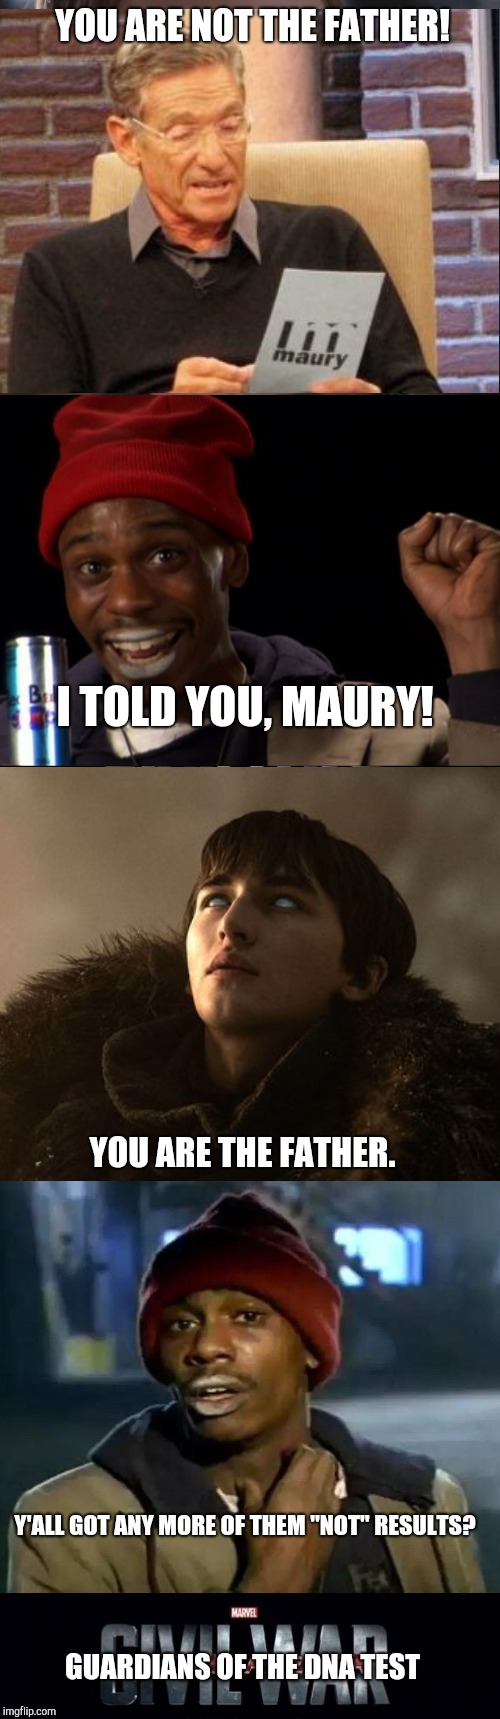 "Y'all got any more of them ""not"" results? 